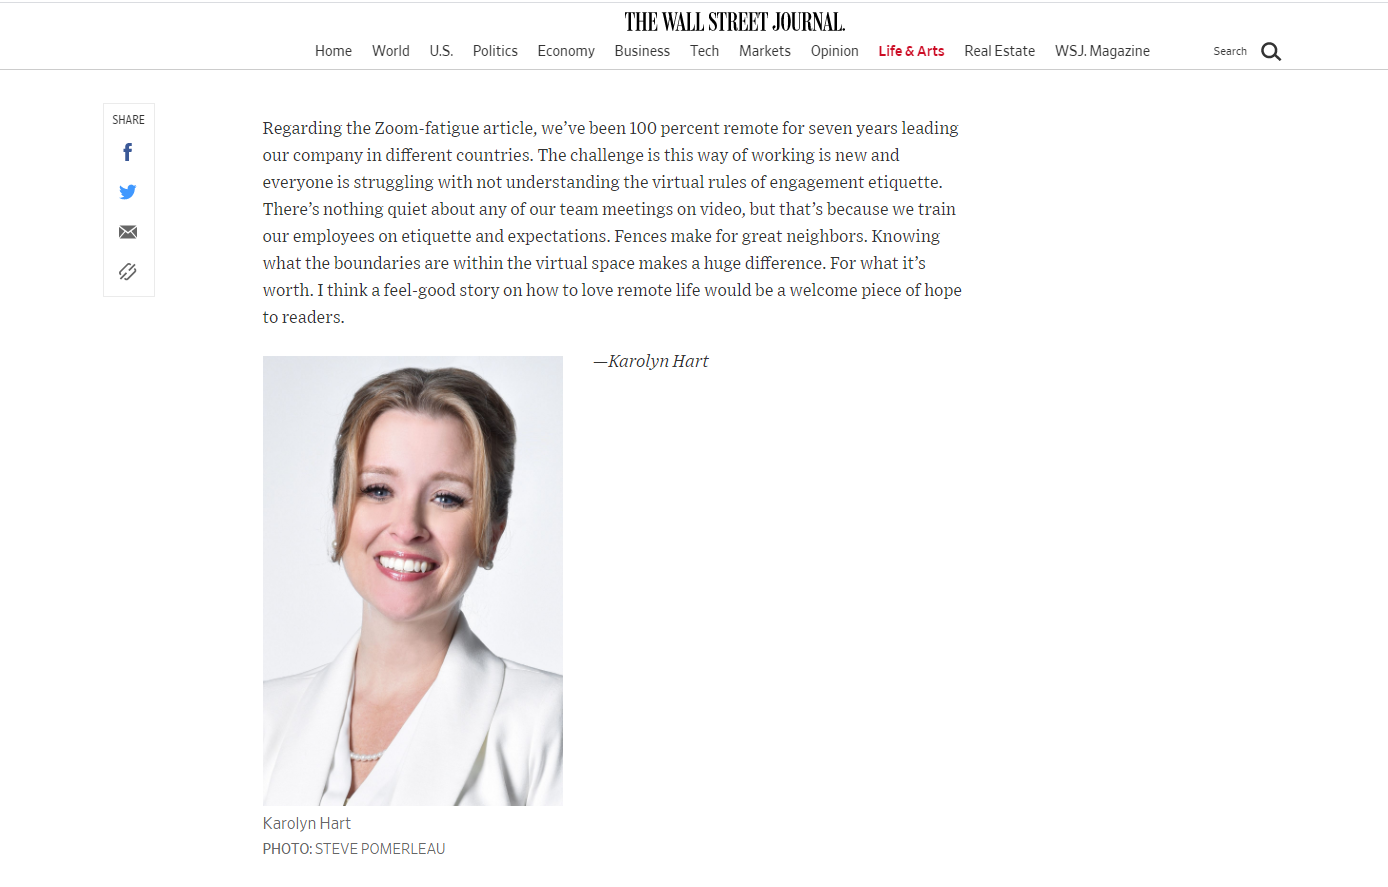 InspireHUB Founder Karolyn Hart shared some thoughts with the Wall Street Journal on how to combat Zoom fatique